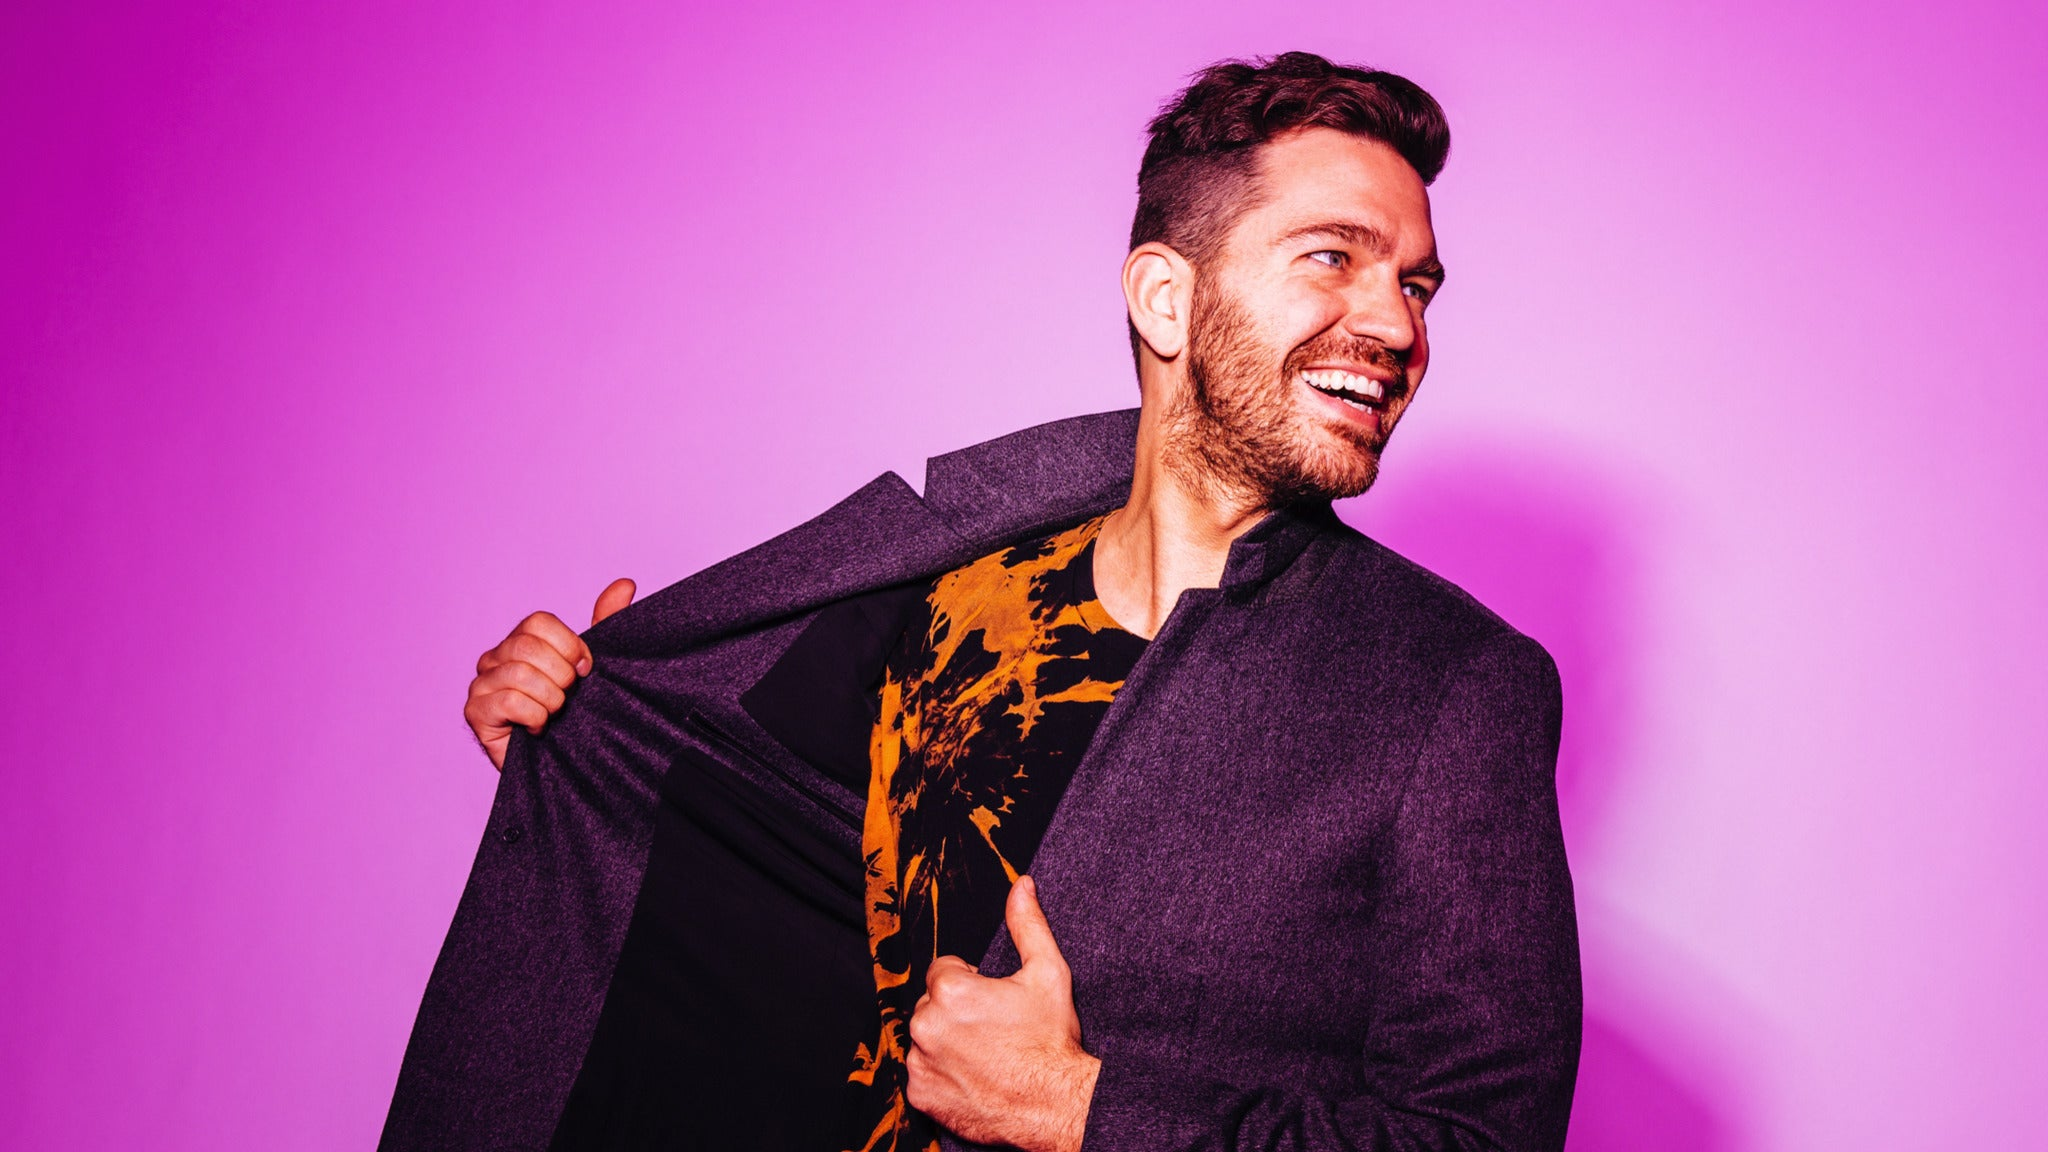 Andy Grammer at Turner Hall Ballroom